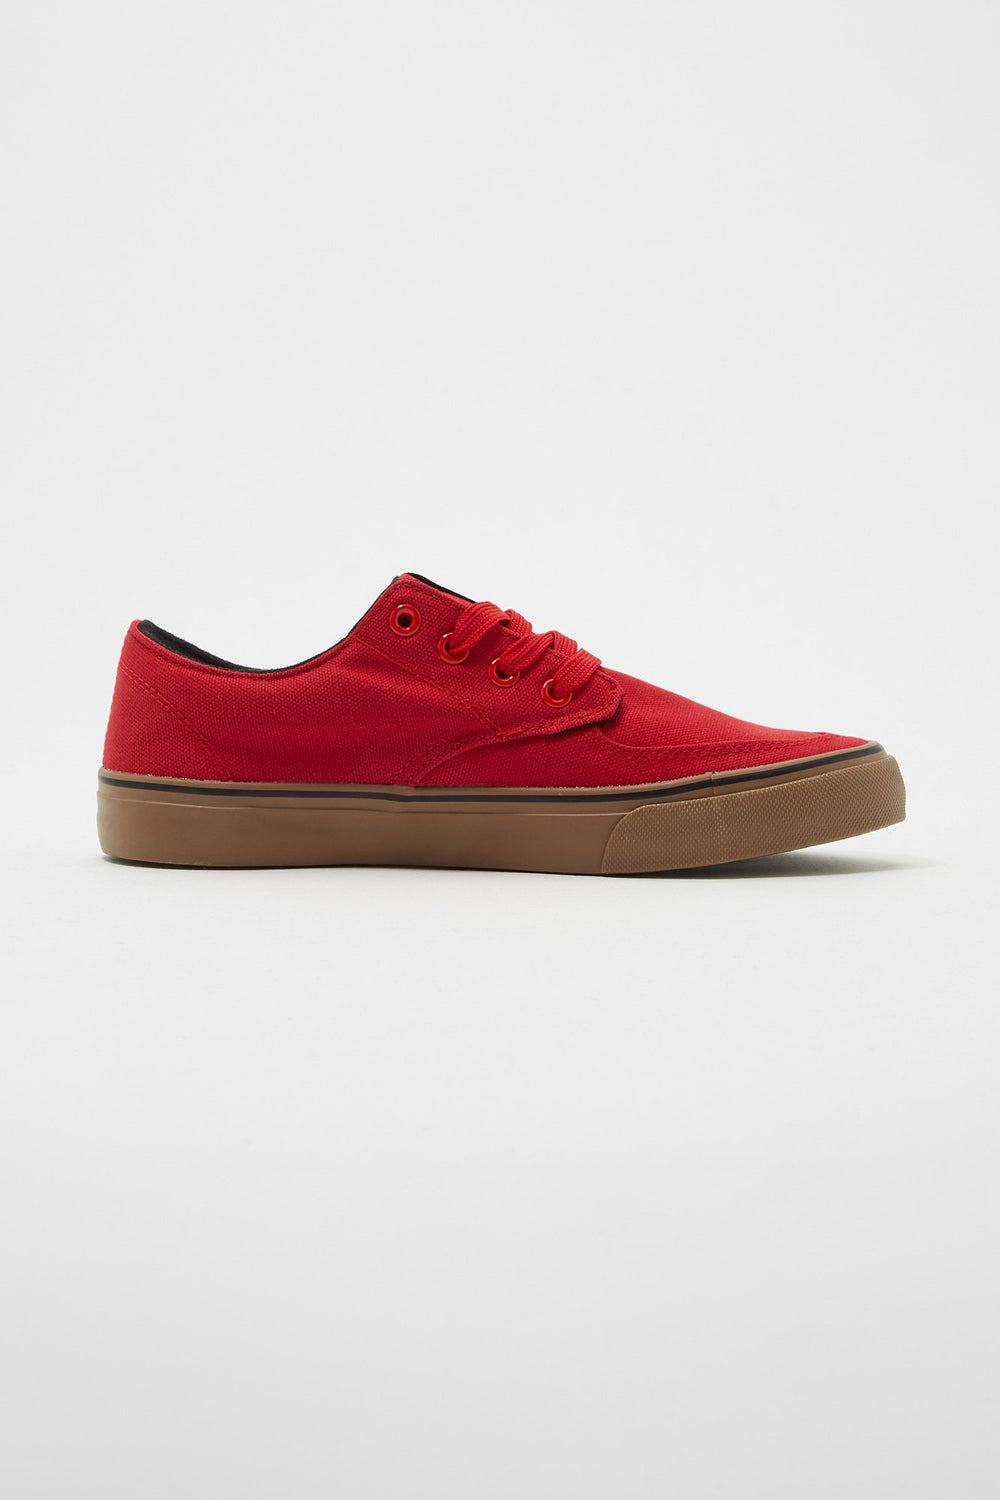 Zoo York Boys All Black Ryan Canvas Shoes Red